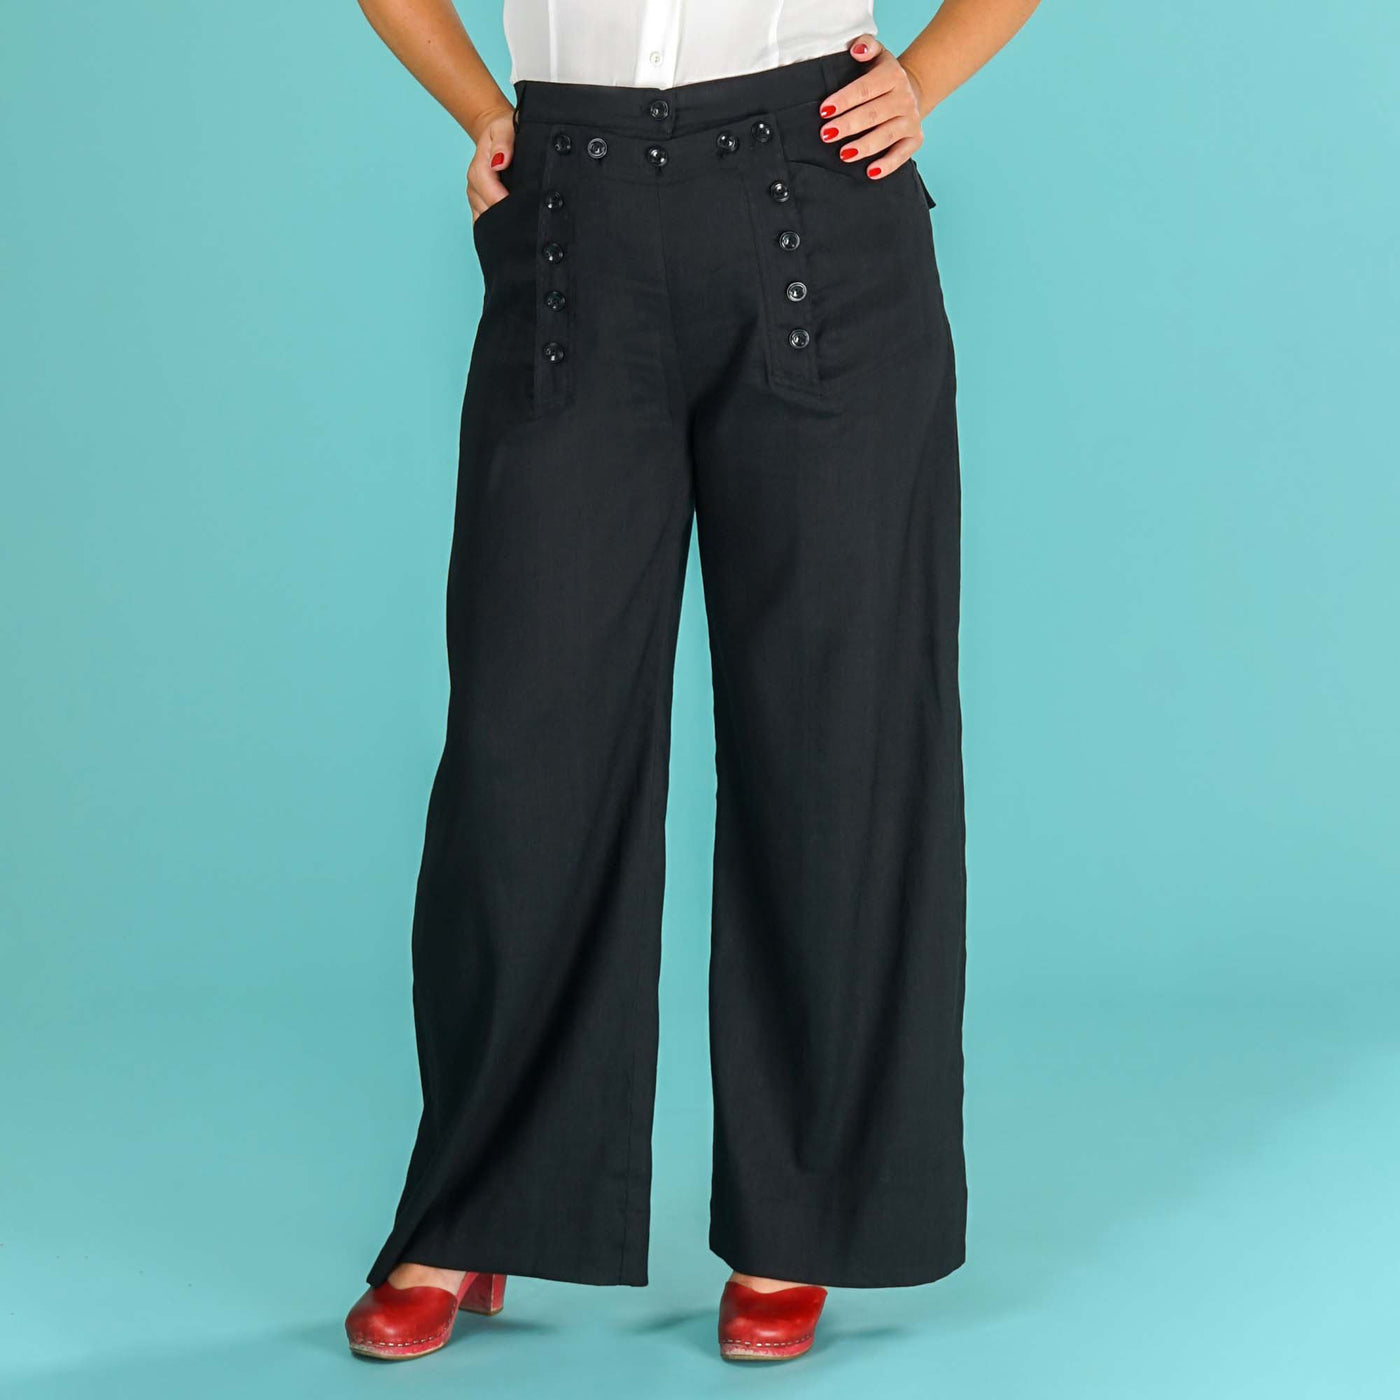 High Waisted Trousers Black Sailor Slacks Emmy Design